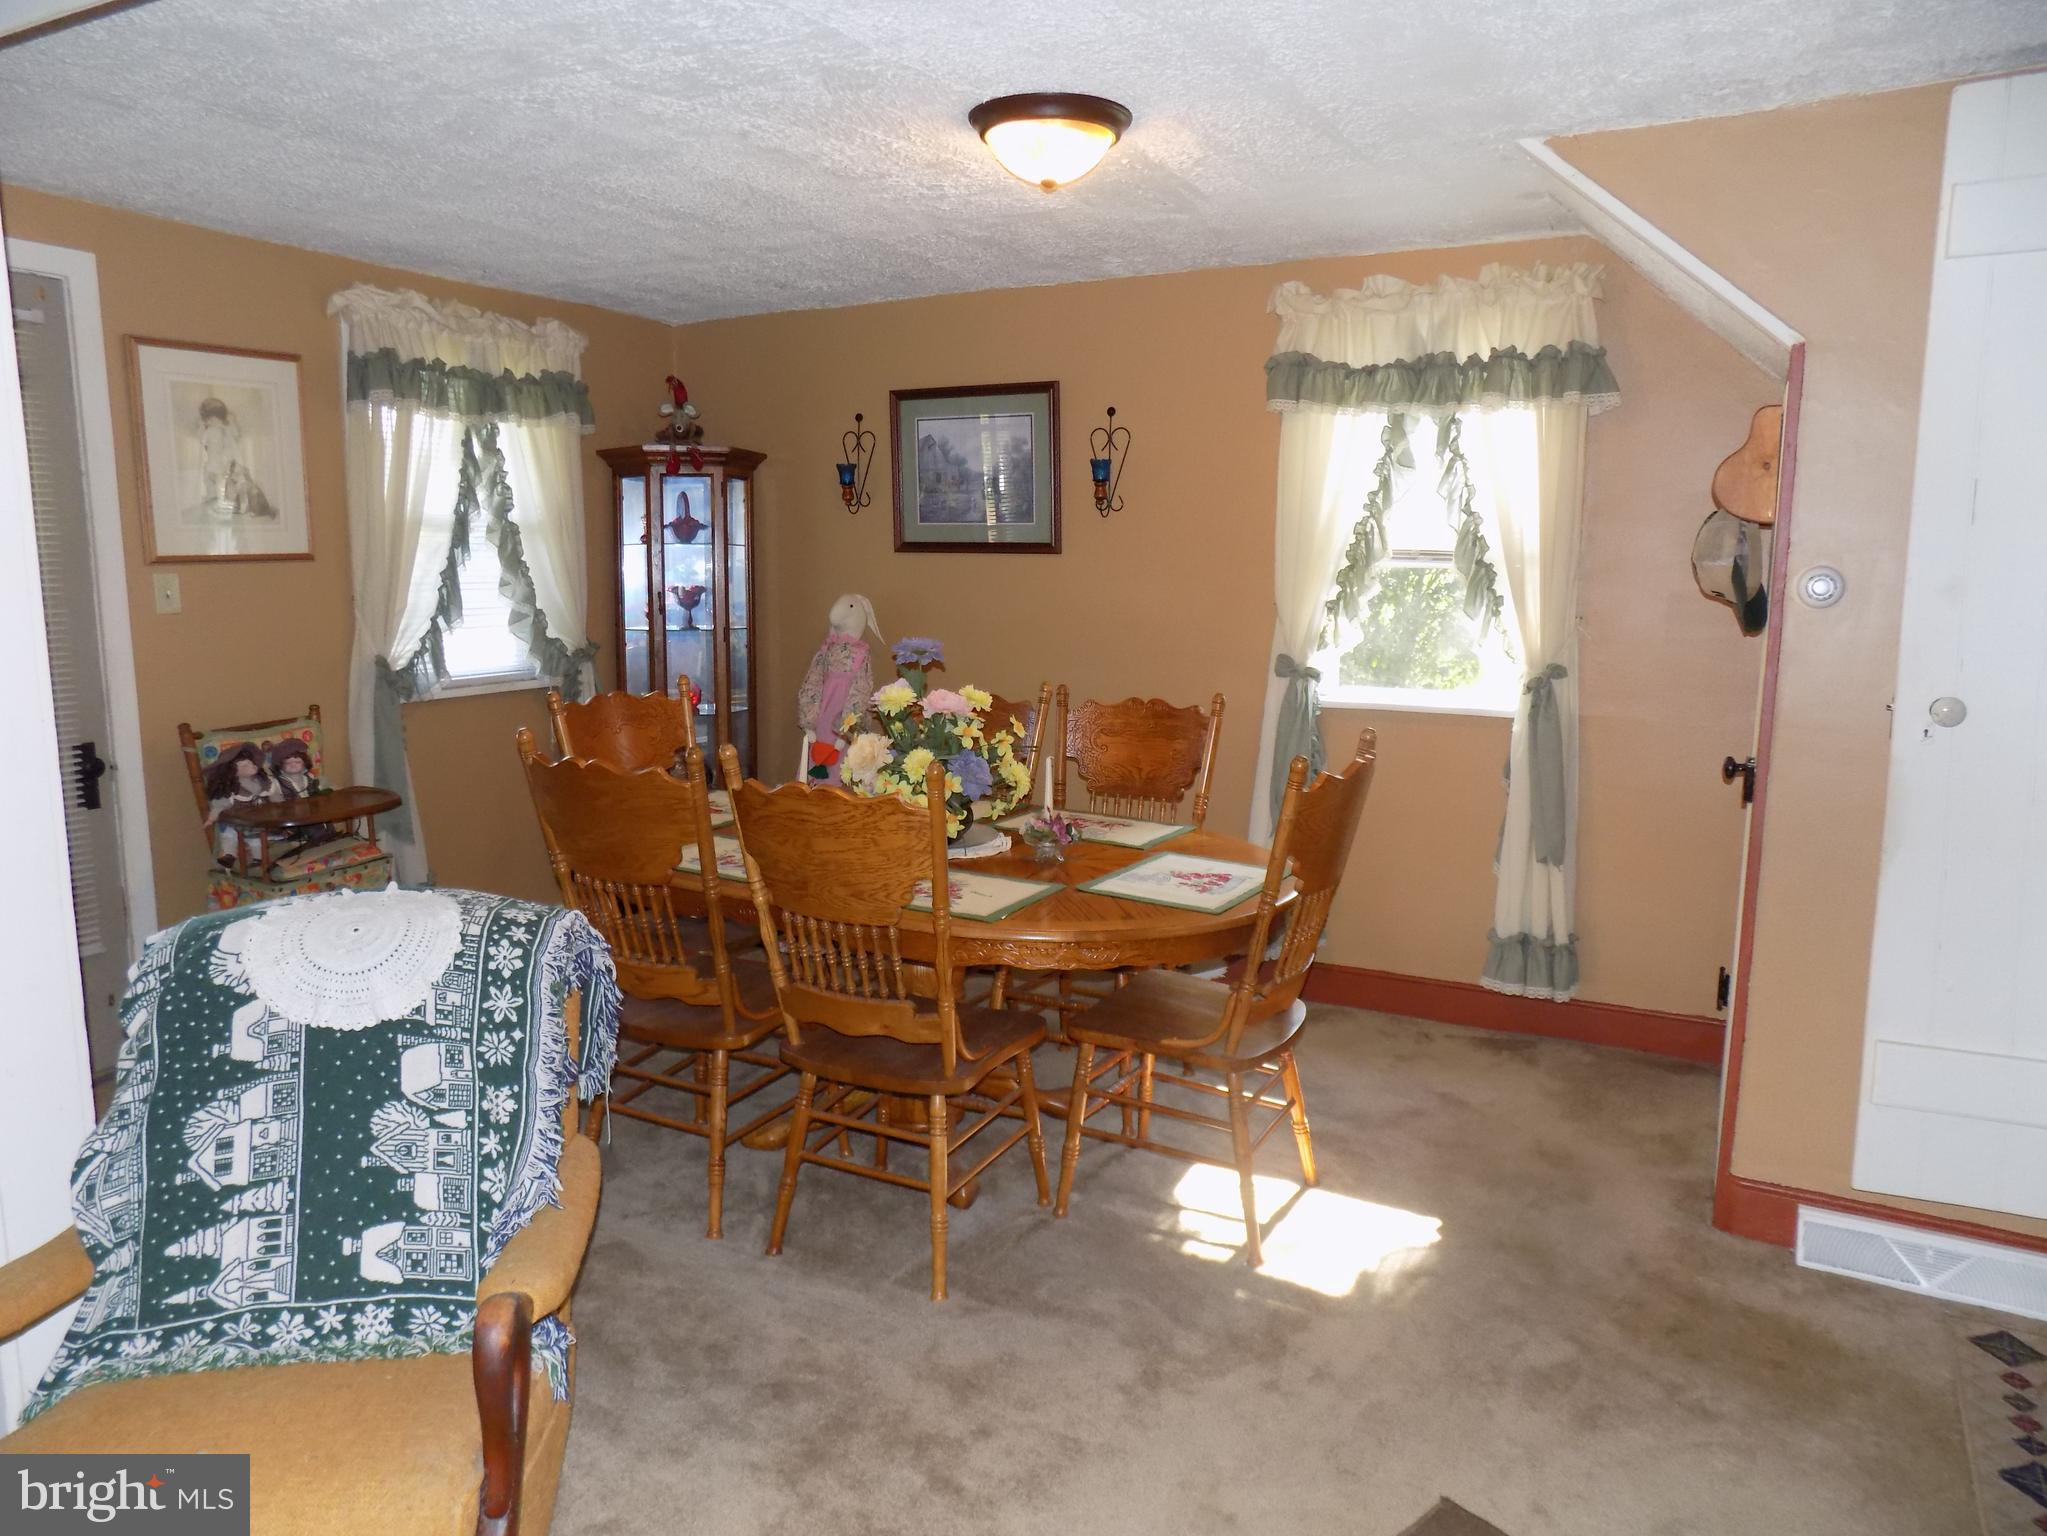 Residential for sale in PEQUEA, Pennsylvania, 1008125880